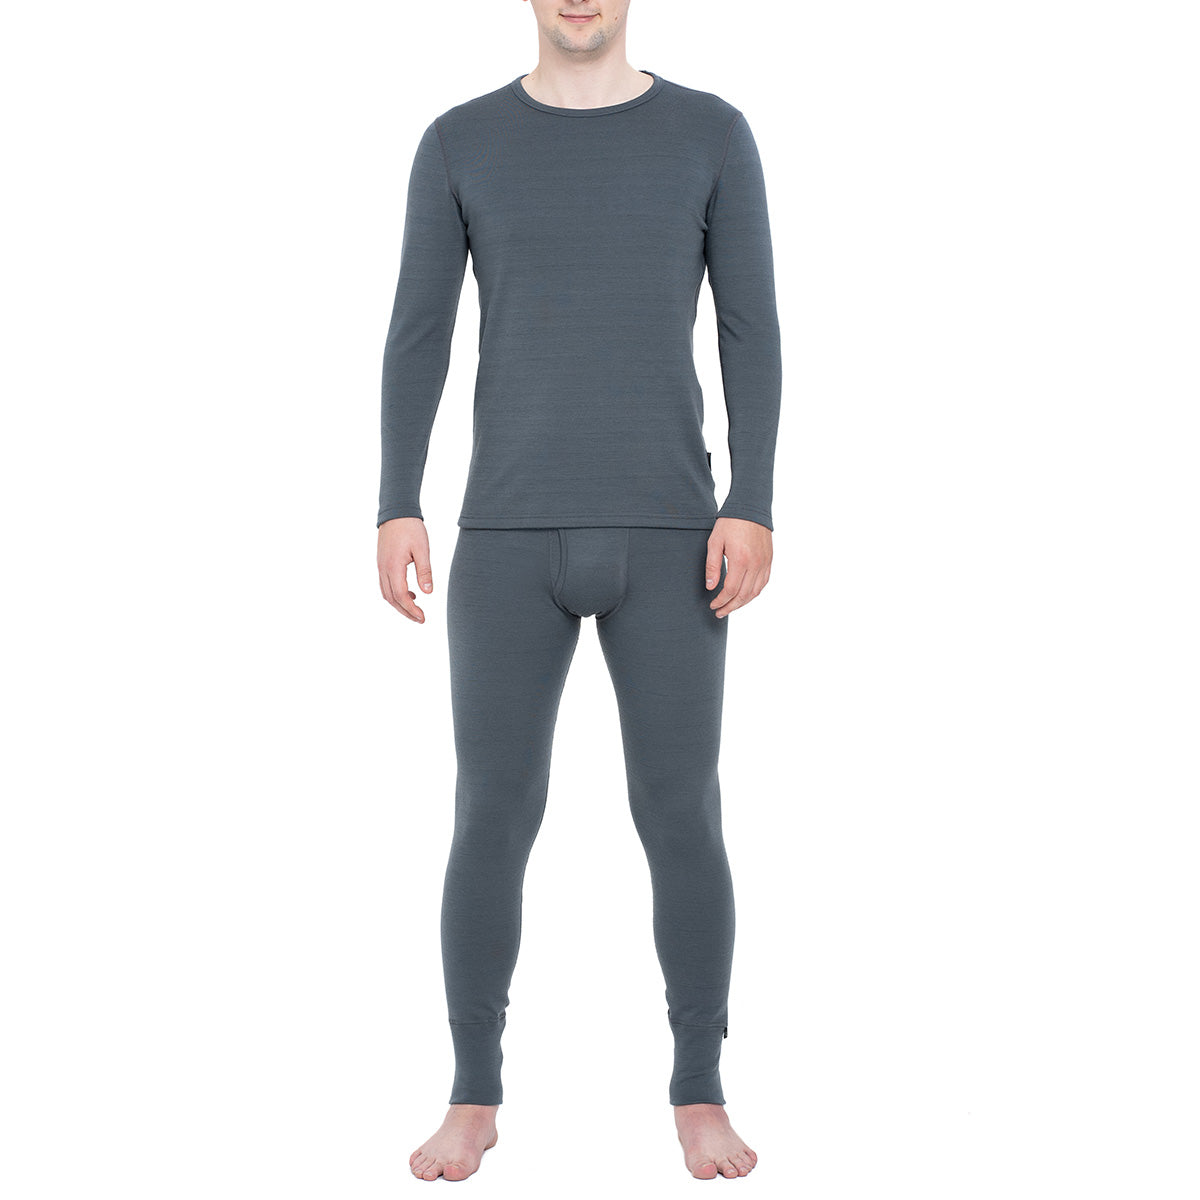 Men's Long Sleeve Set 250gsm Merino Wool Perfect Grey